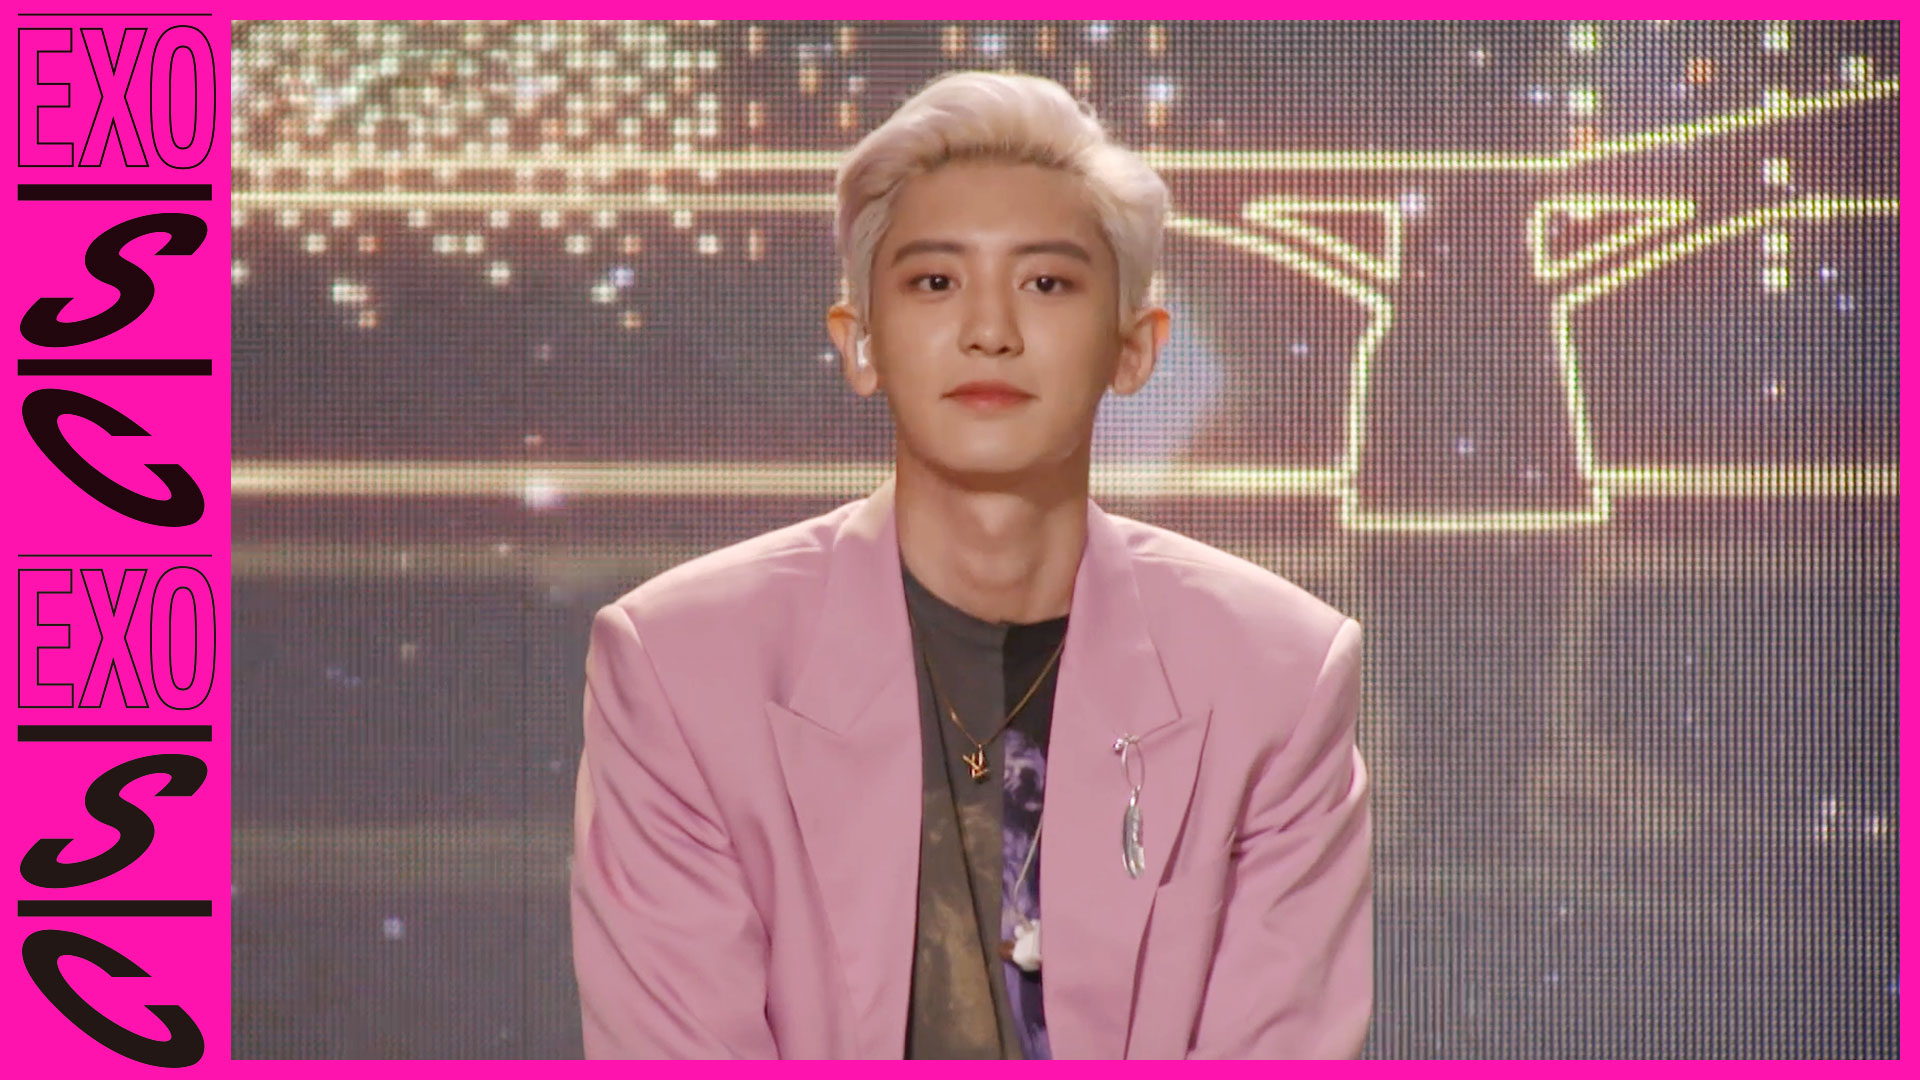 CHANYEOL CAM | '부르면 돼 (Closer to you)' @EXO-SC 세훈&찬열 SHOWCASE